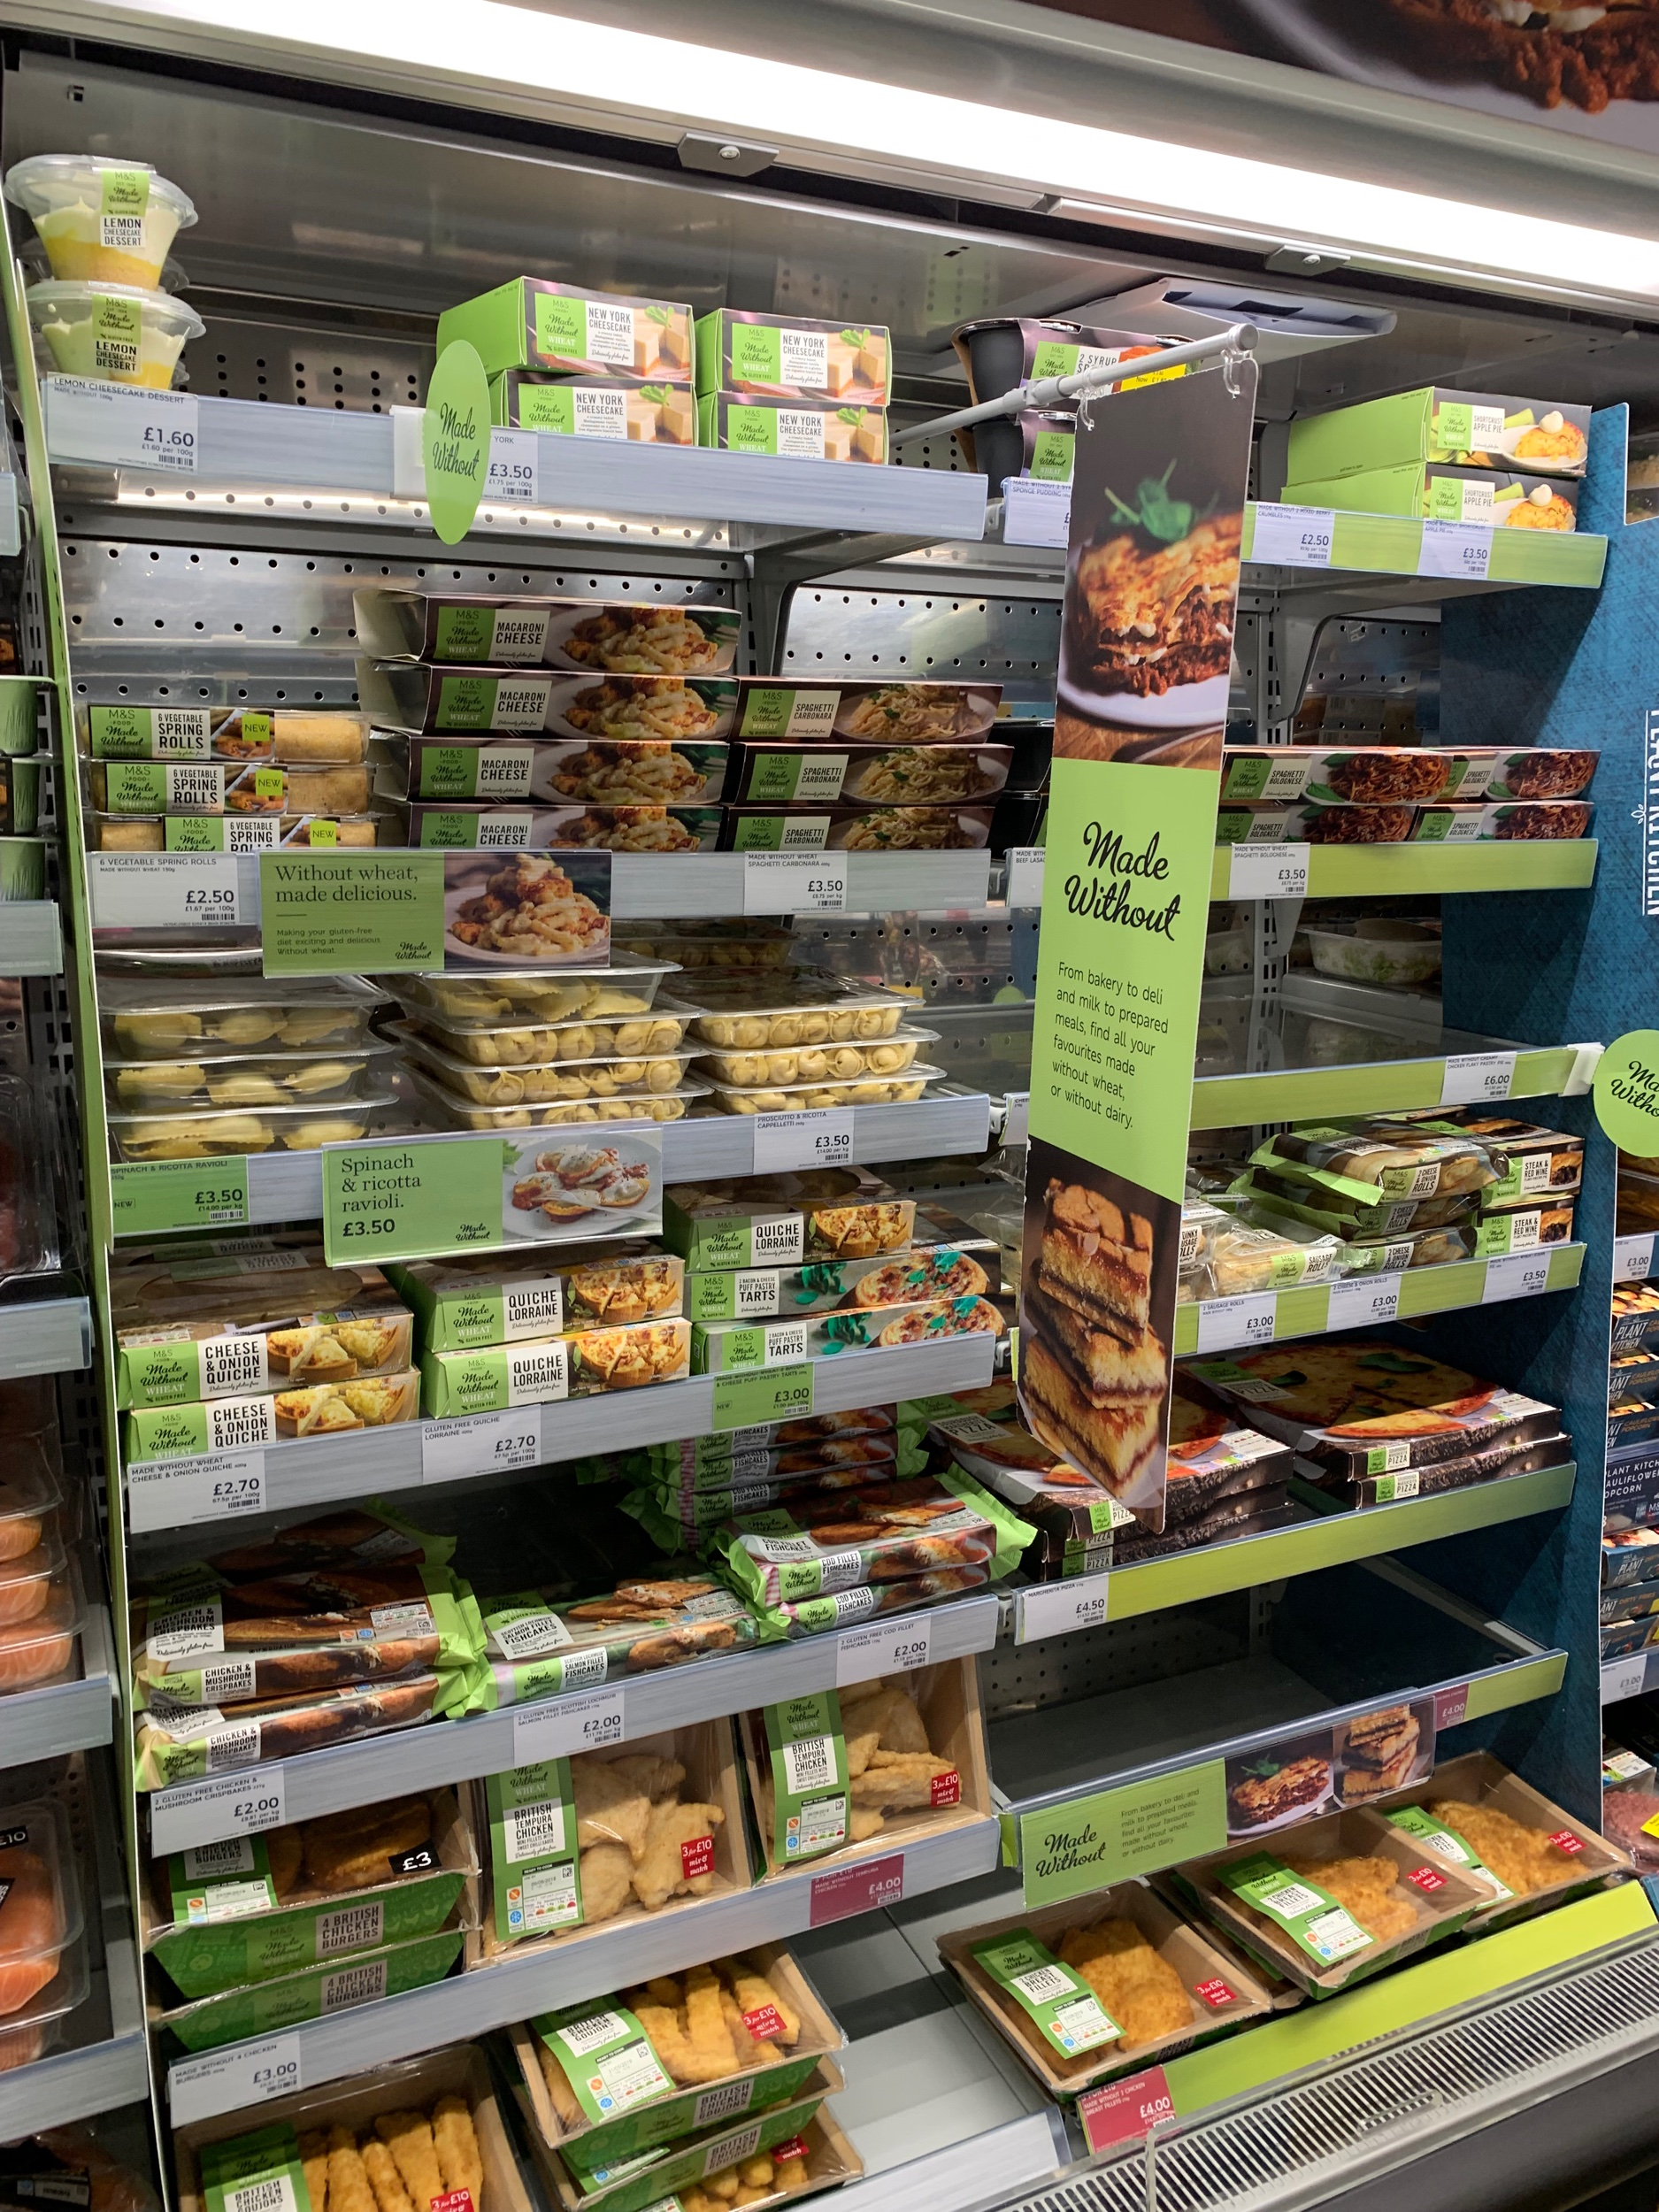 UK: Ready-to-eat meals catering to people with dietary requirements.